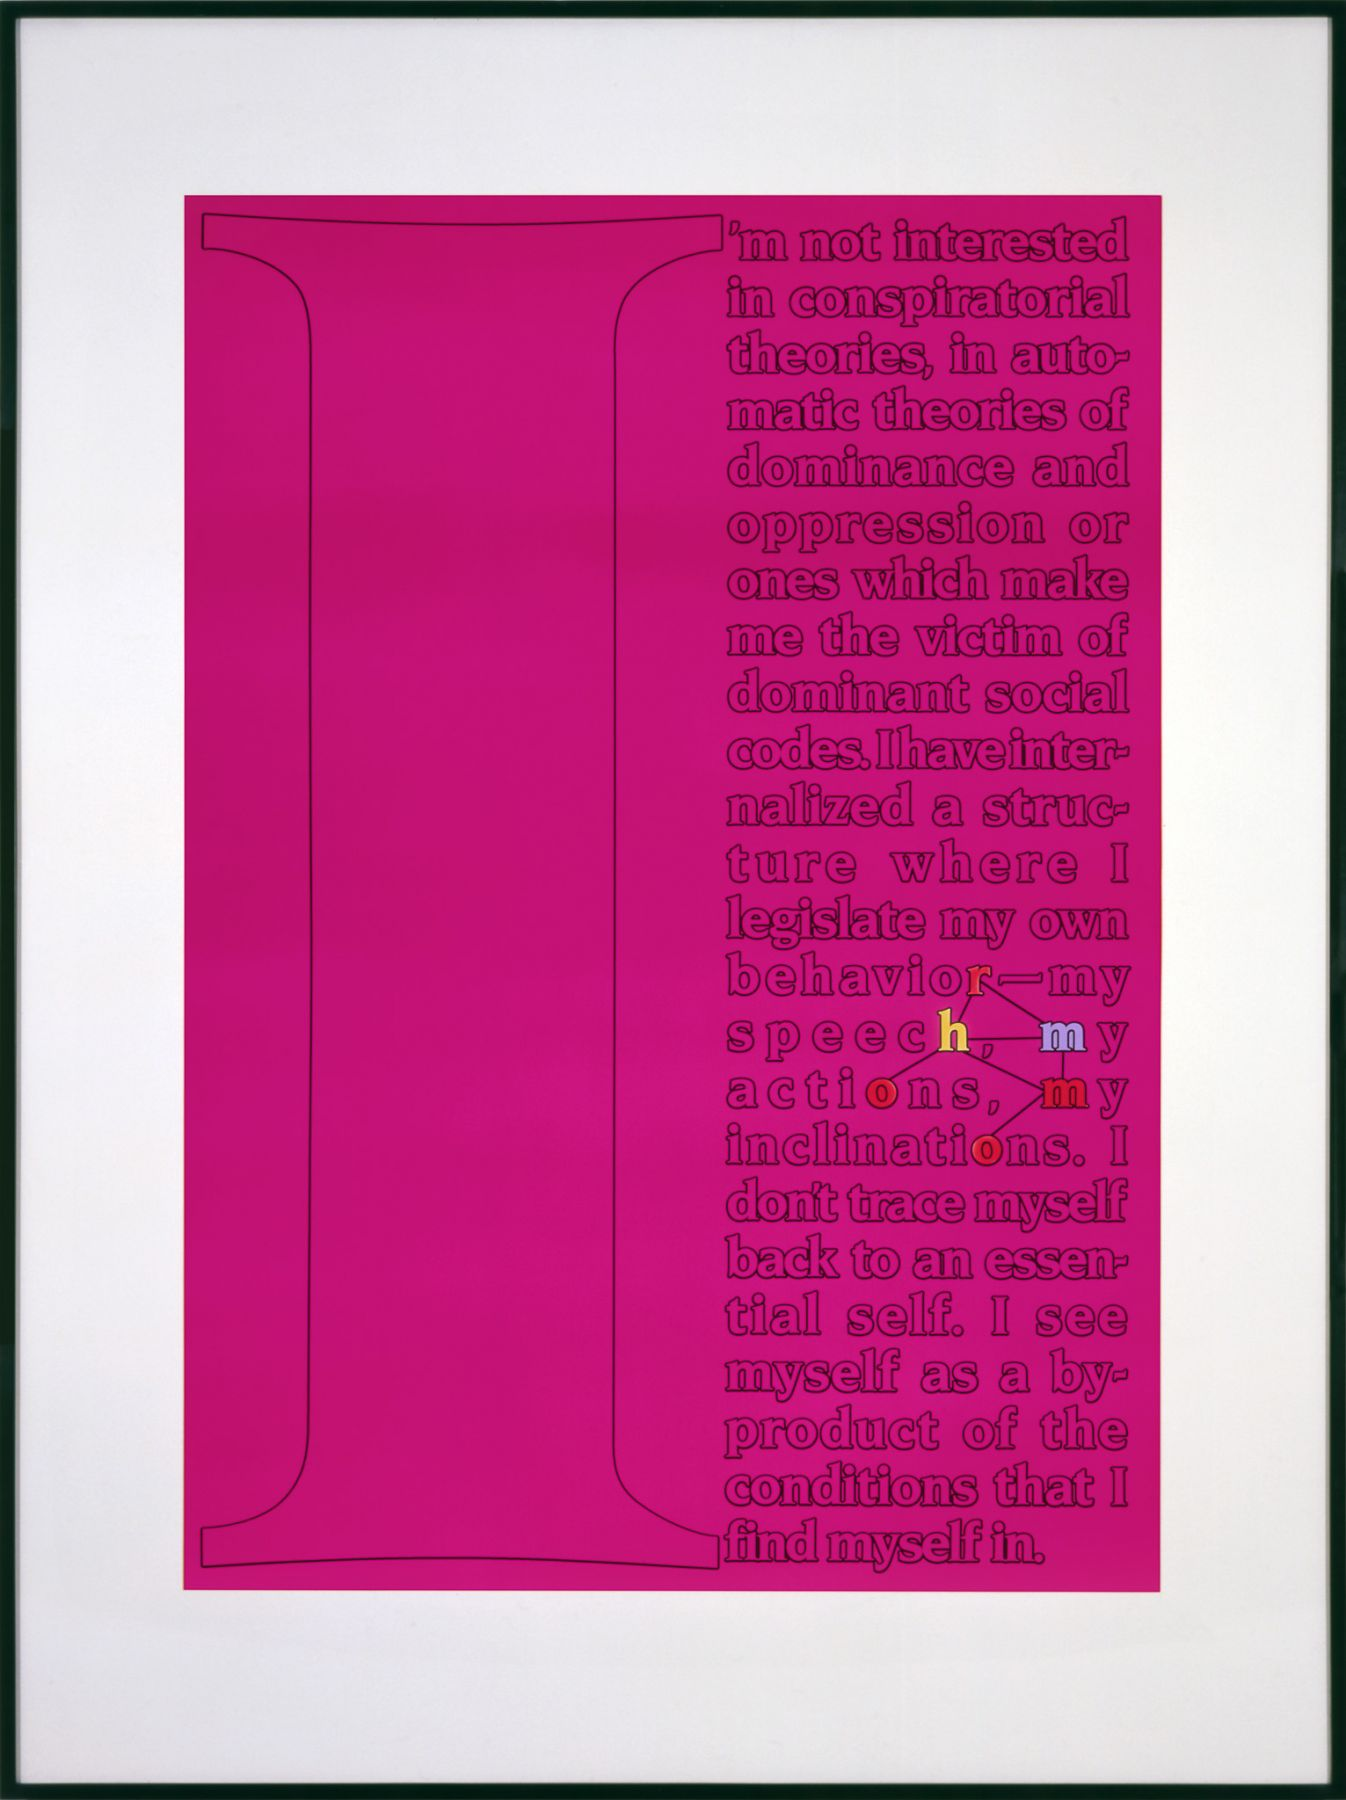 Larry Johnson, Untitled (Sampler), 1989